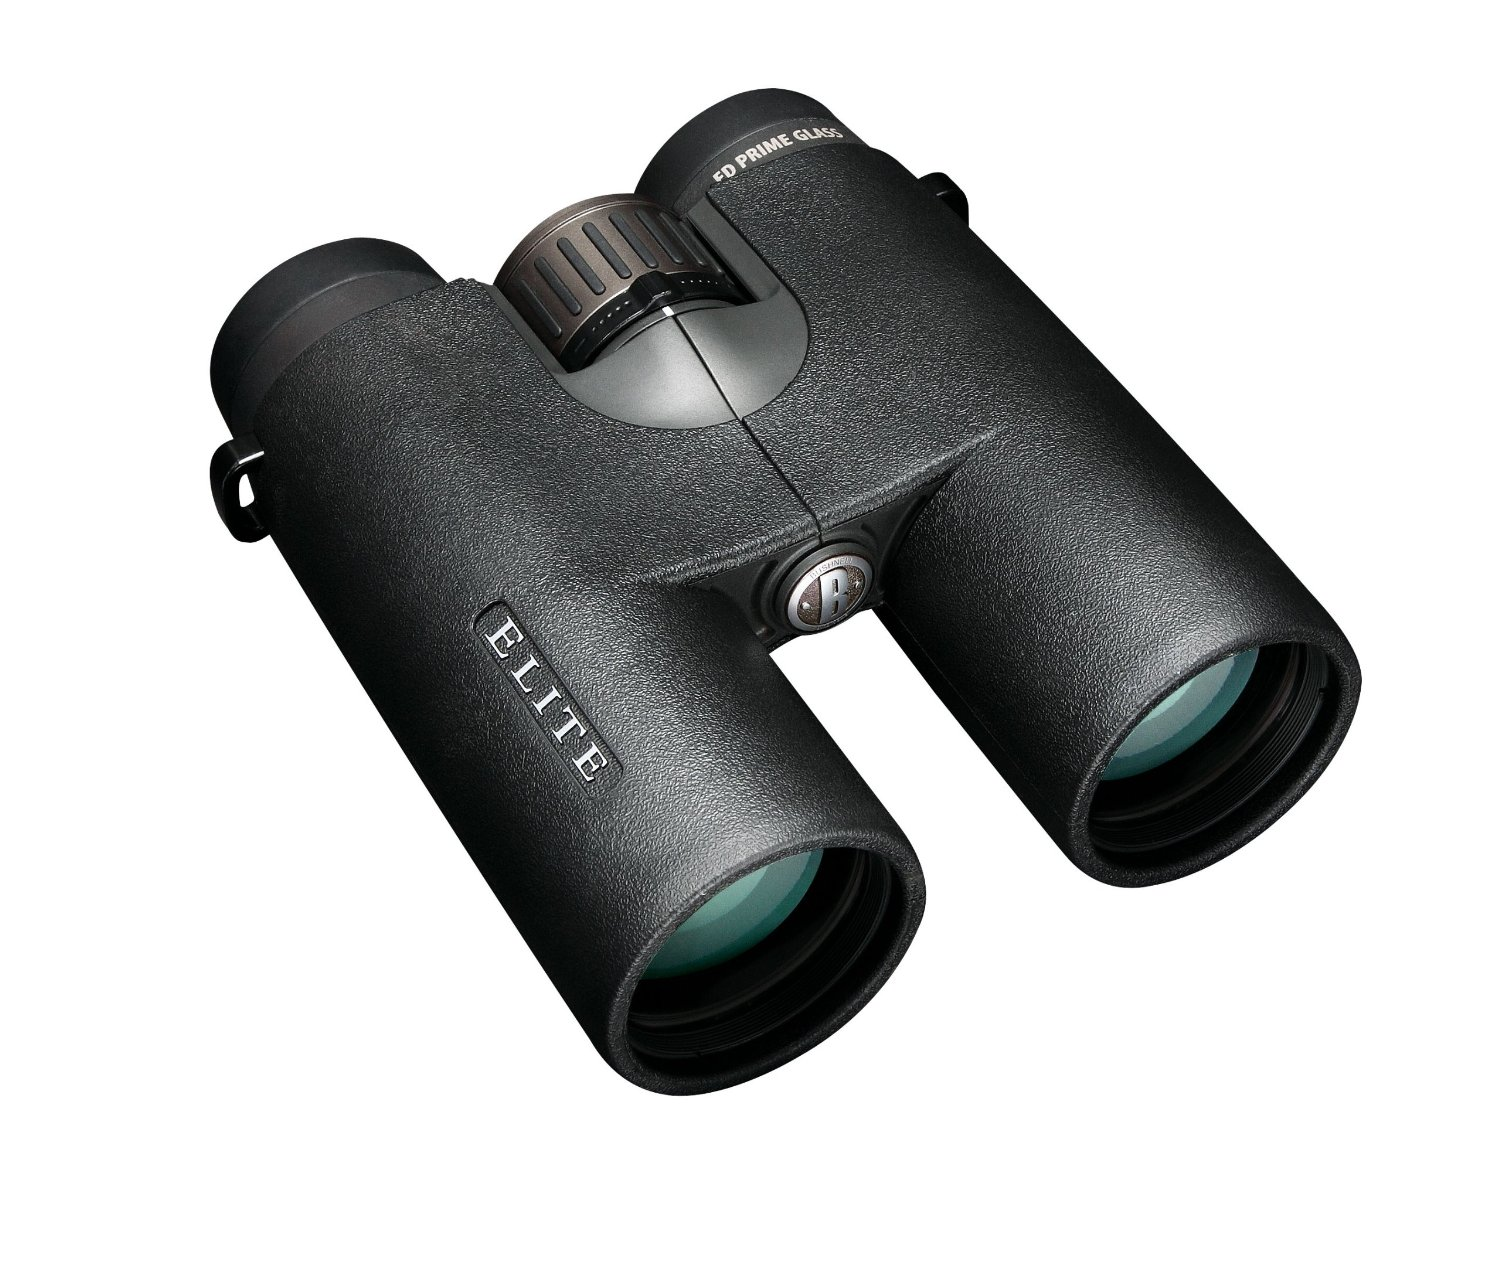 Бинокль Bushnell  10x42 8X42 620142ED 628042ED бинокль bushnell 8 16x40 zoom powerview roof 1481640